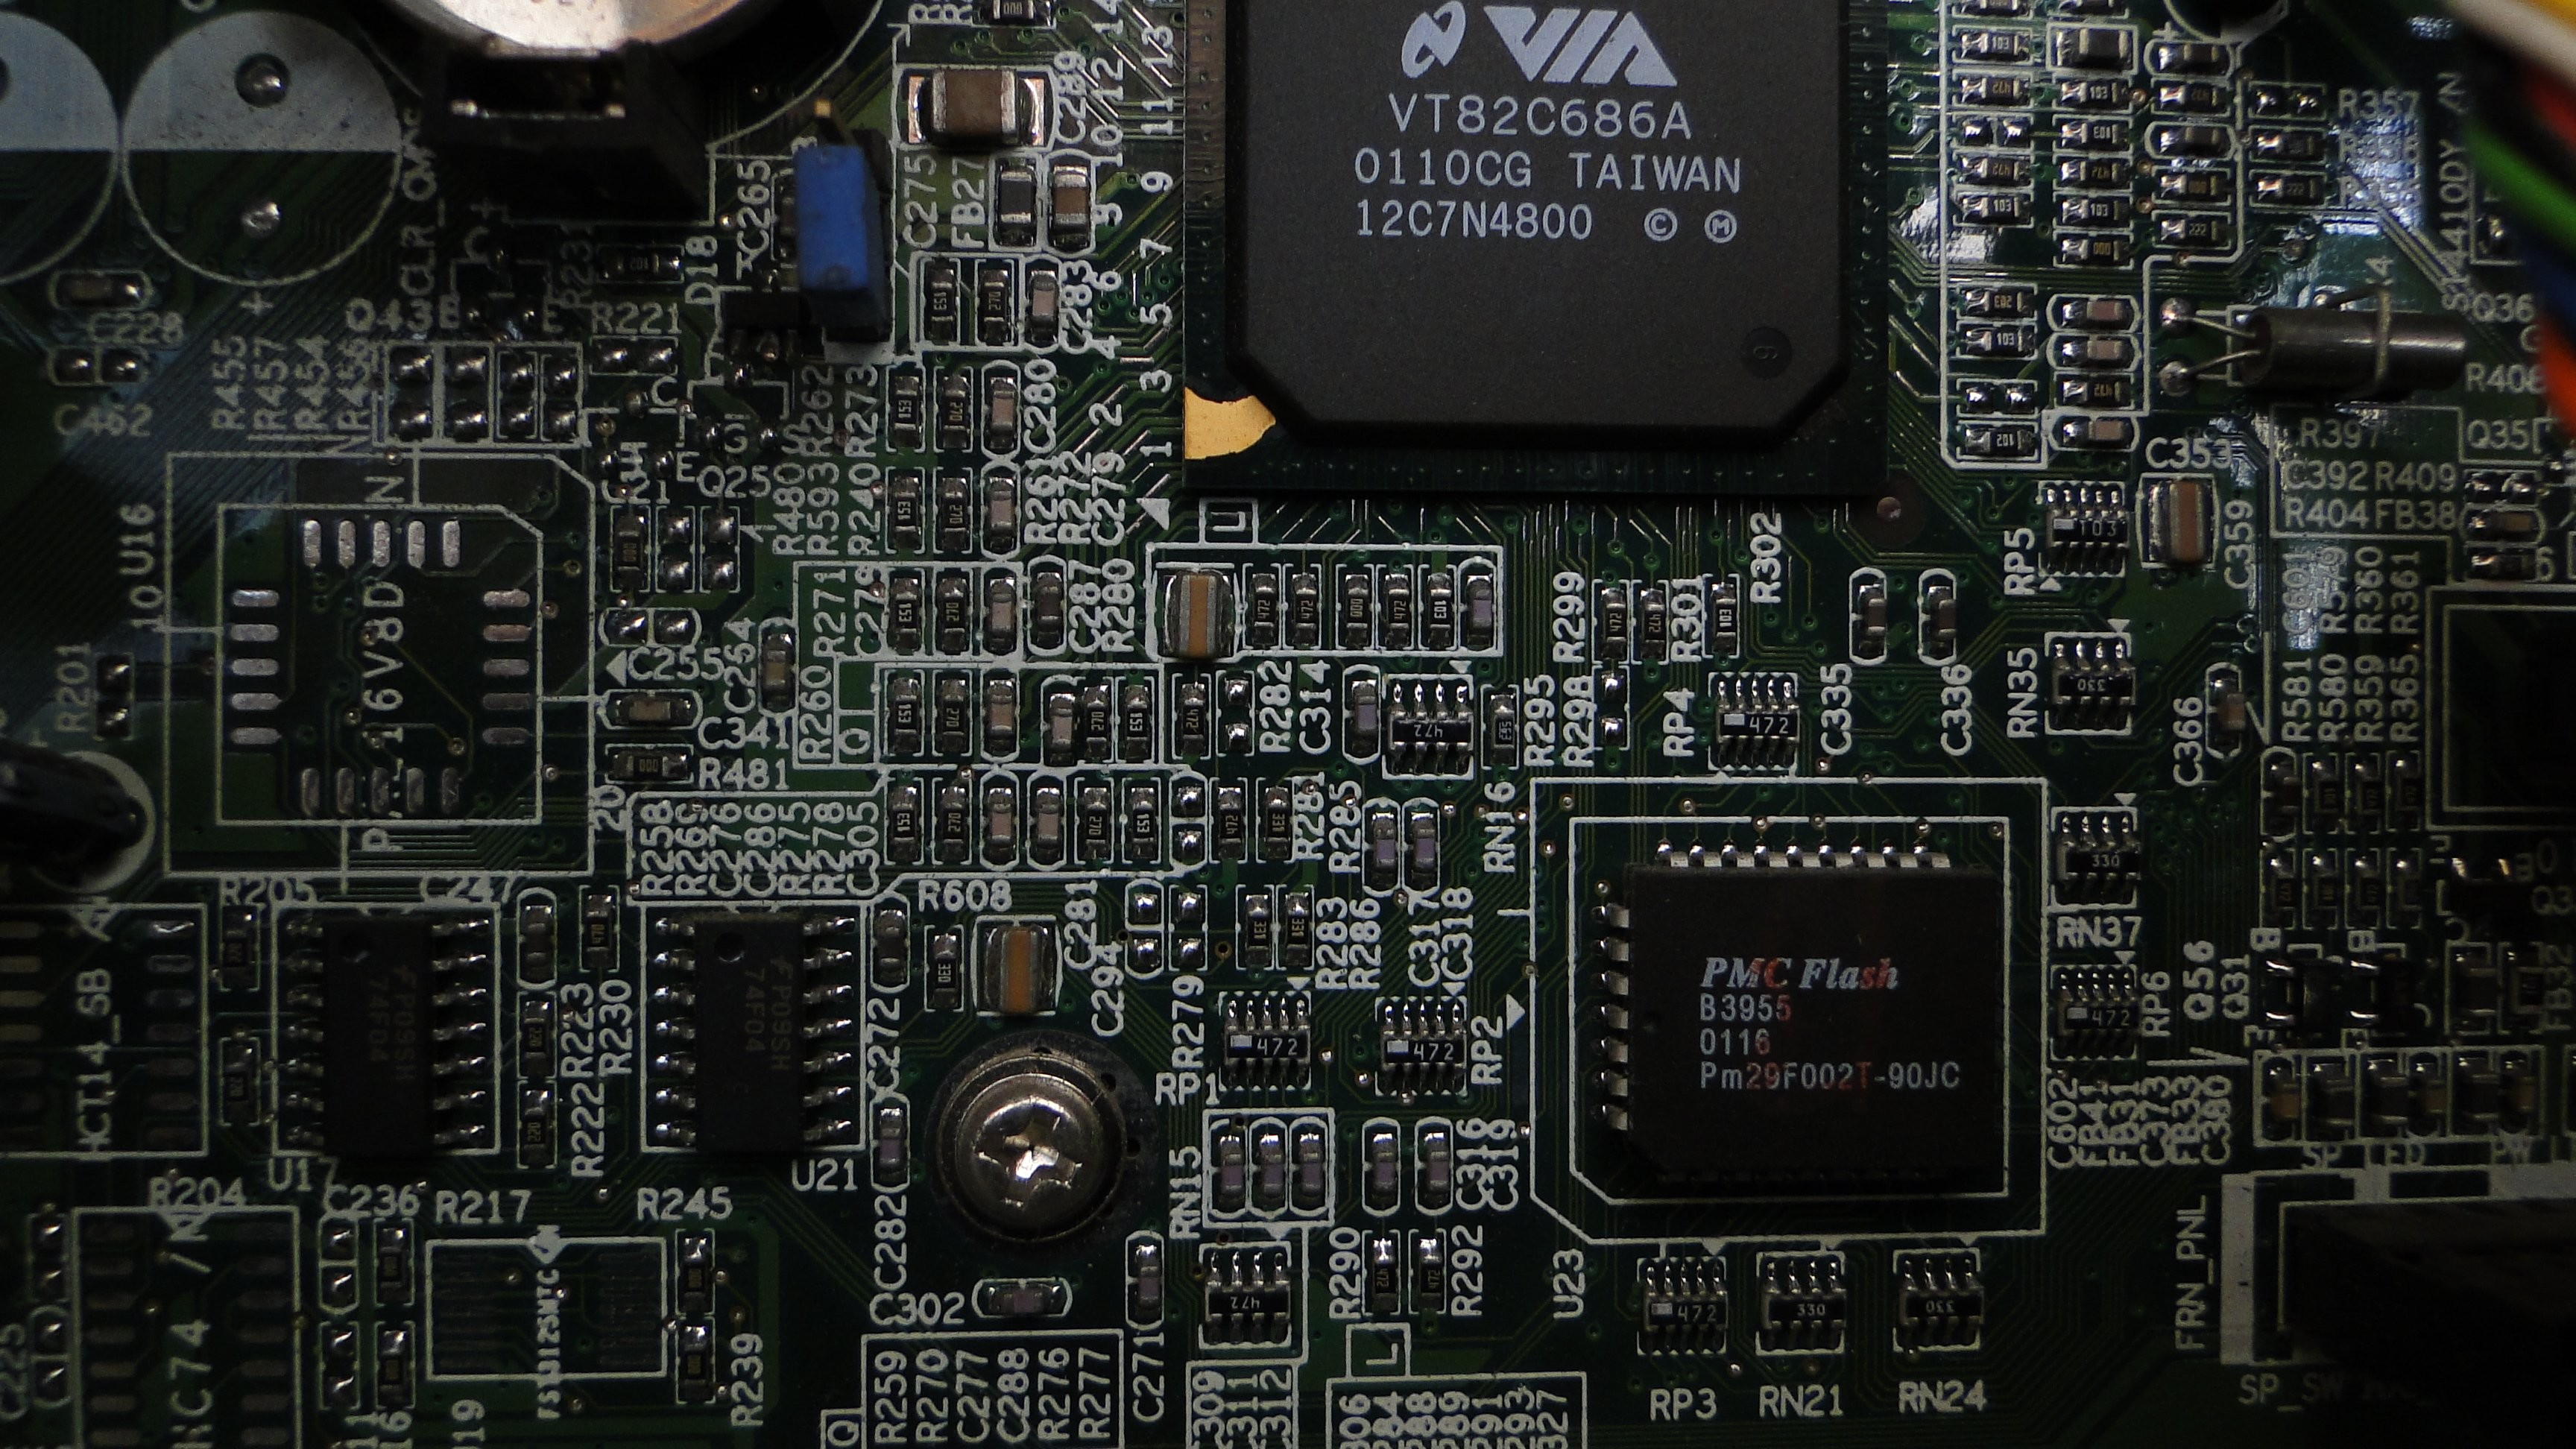 Motherboard Wallpapers 71 Background Pictures Circuit Board Components Find 1920x1281 Dolls Simulation Handling